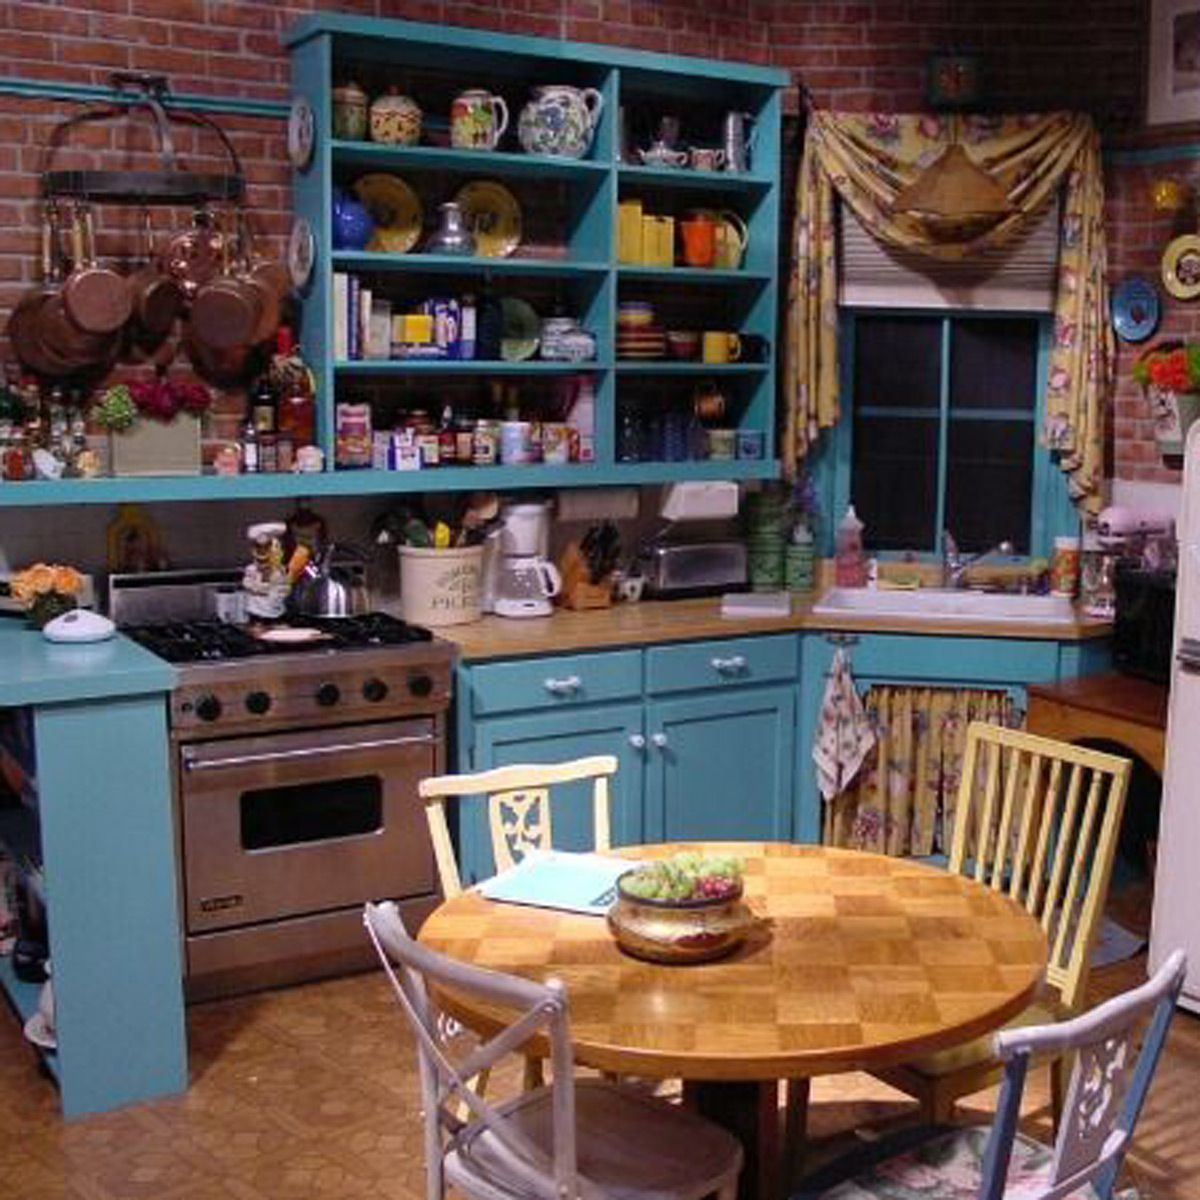 6 of the best movie kitchens (With images) | Apartment ...